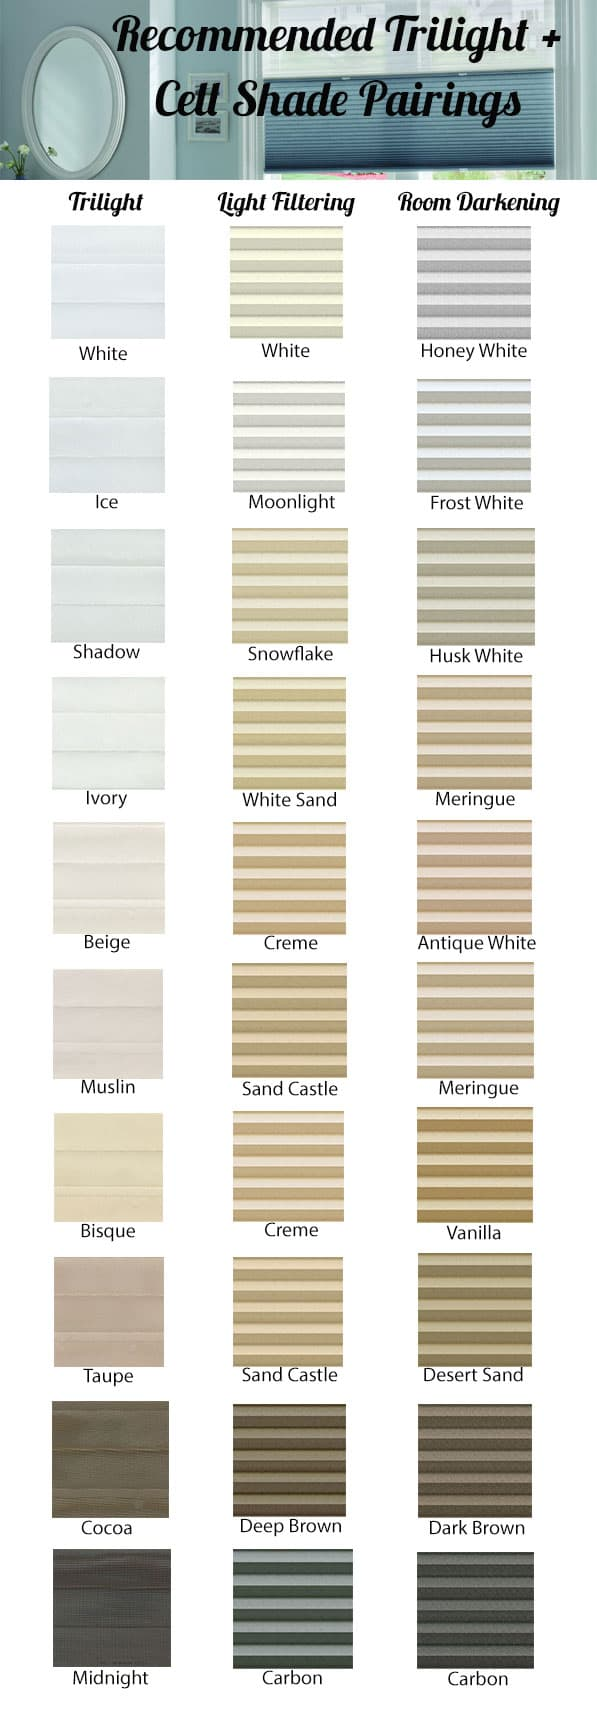 Recommended Trilight color combinations